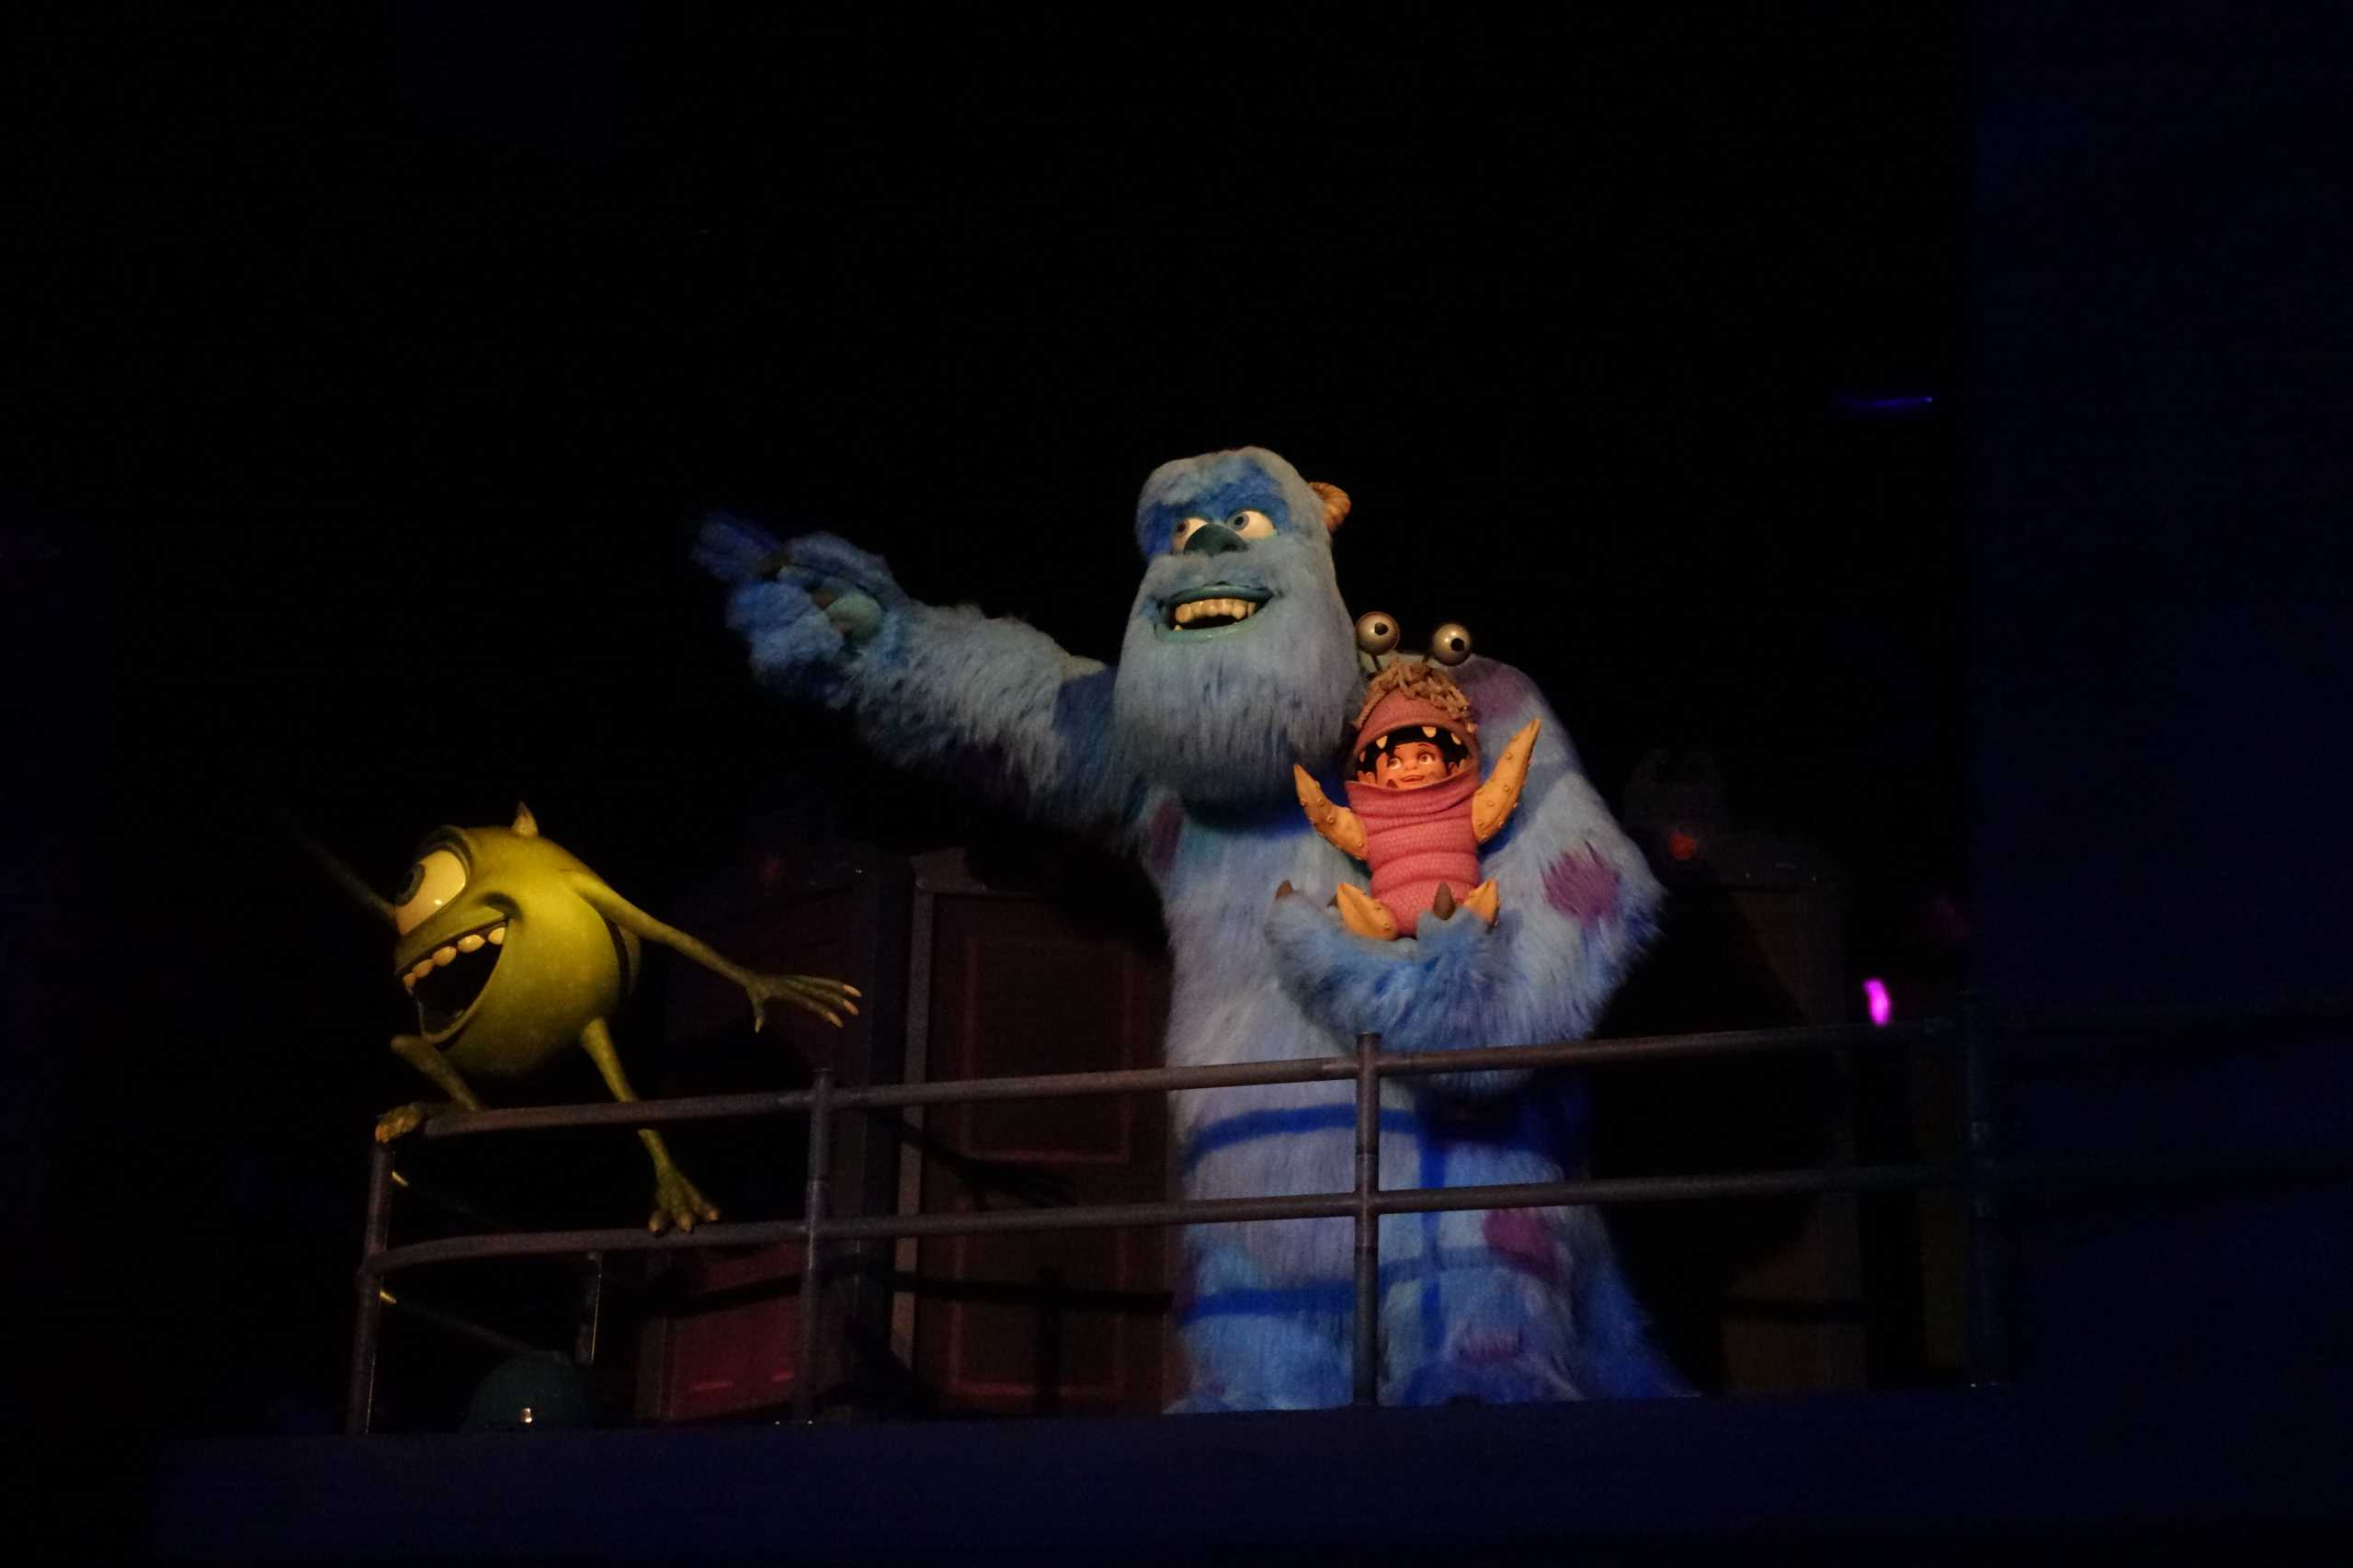 Mike und Sulley aus Monsters Inc.